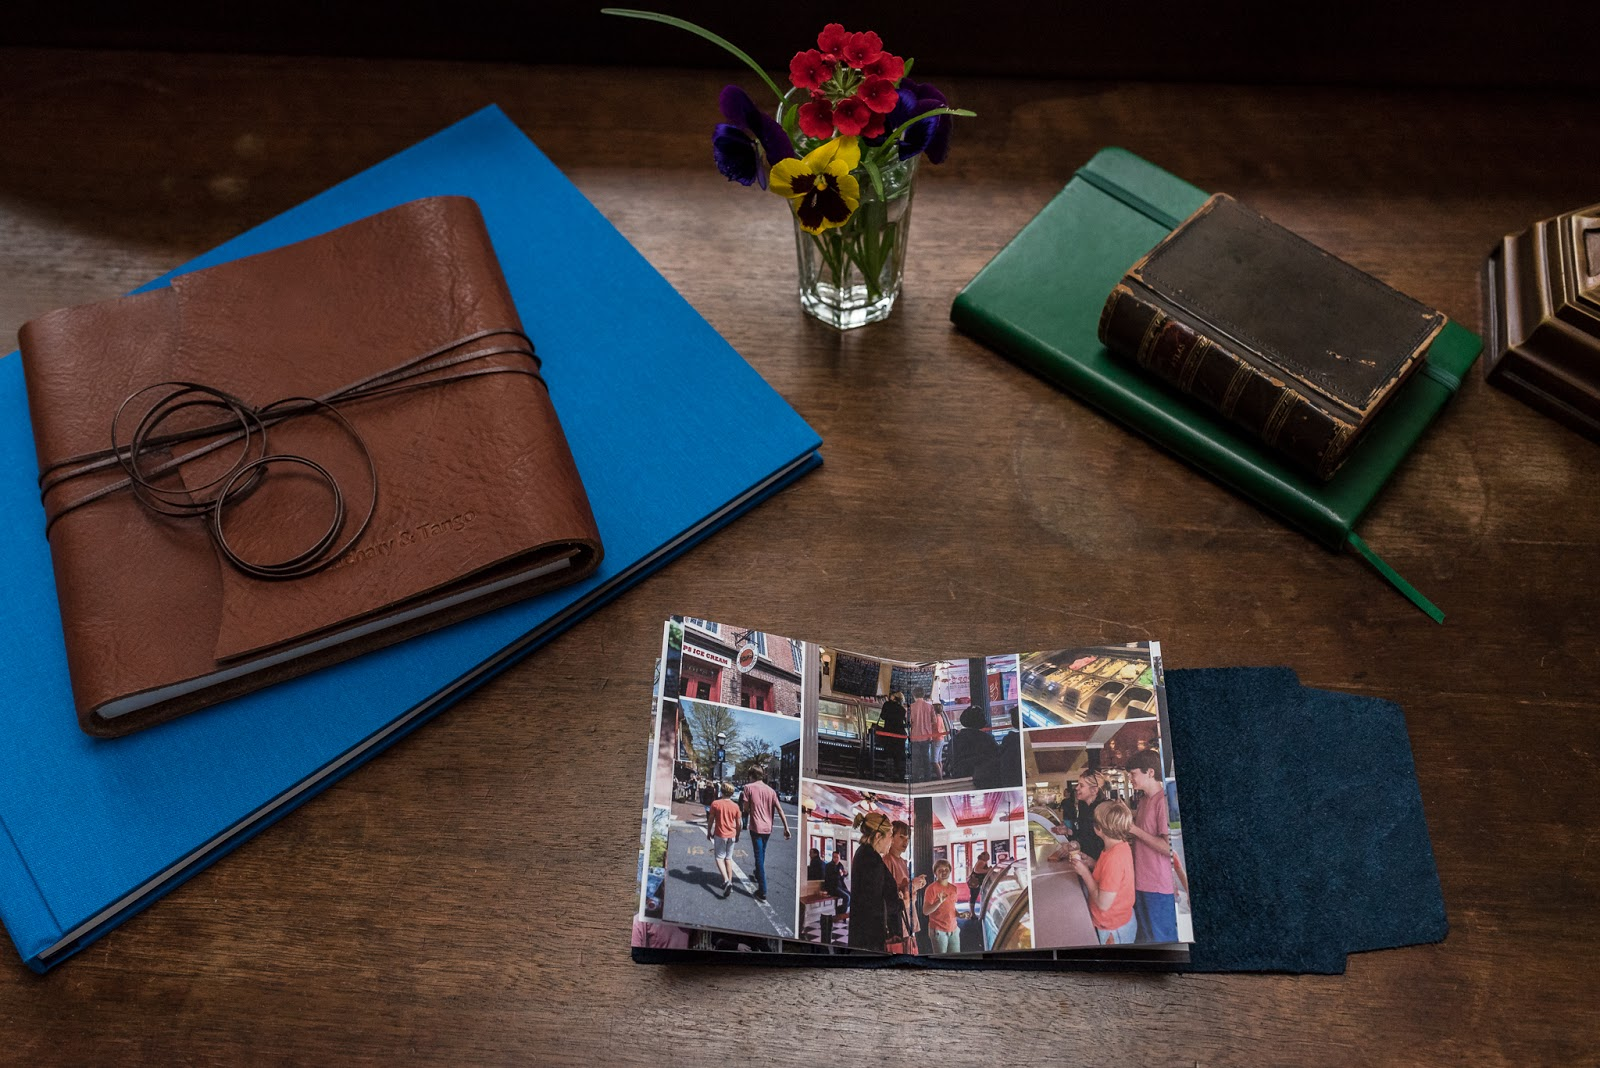 Mini-album from Afternoon in the Life session in Old Town Alexandria from Diana Sherblom Photography